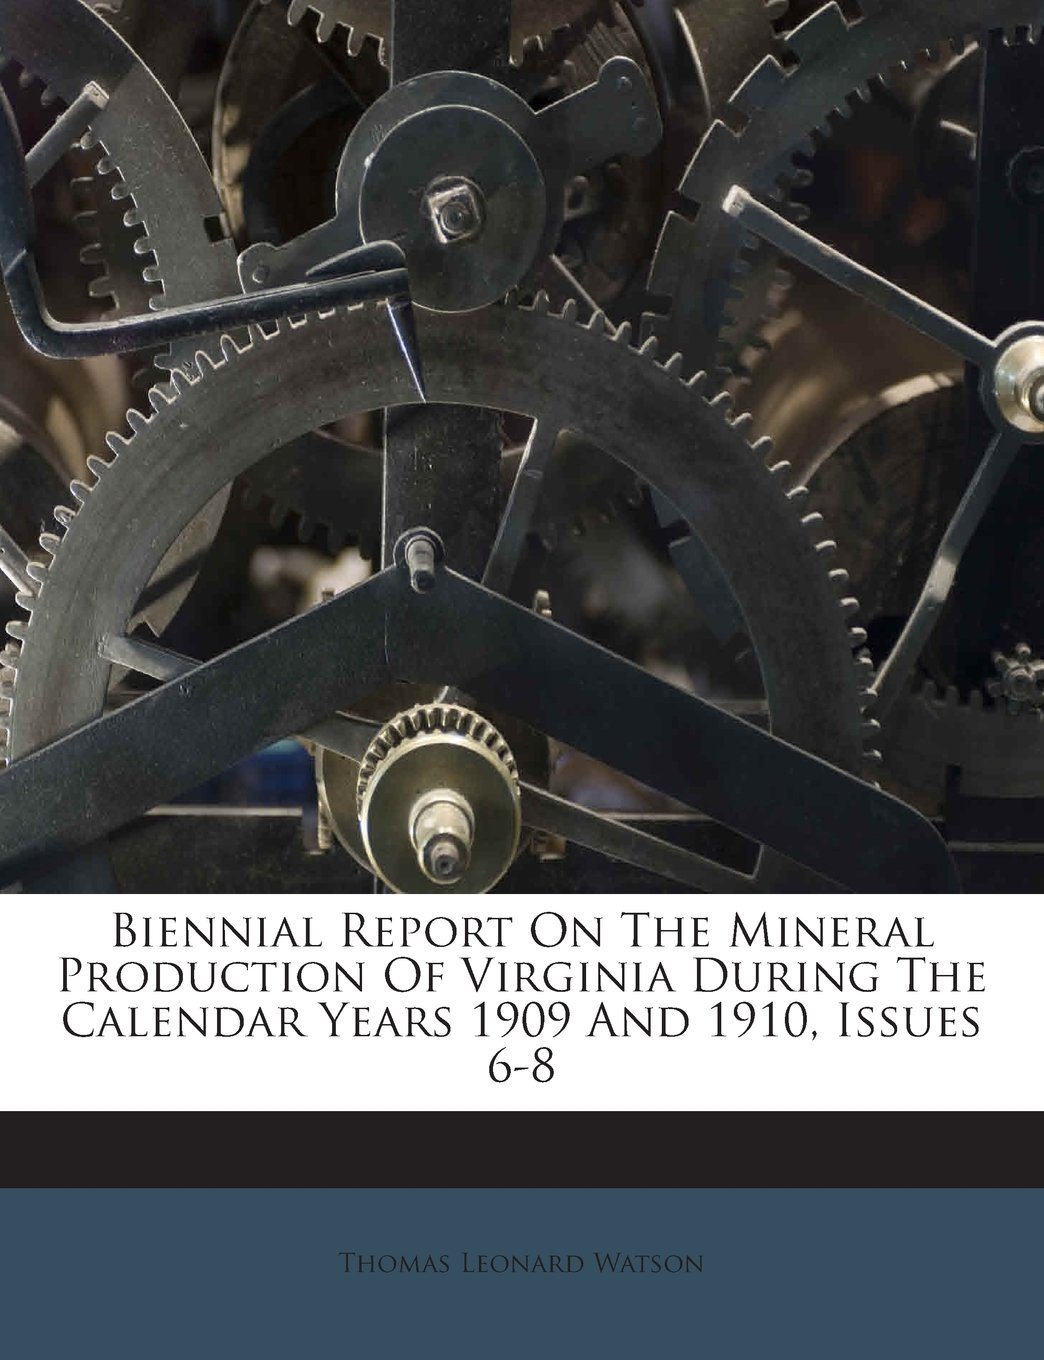 Biennial Report On The Mineral Production Of Virginia During The Calendar Years 1909 And 1910, Issues 6-8 pdf